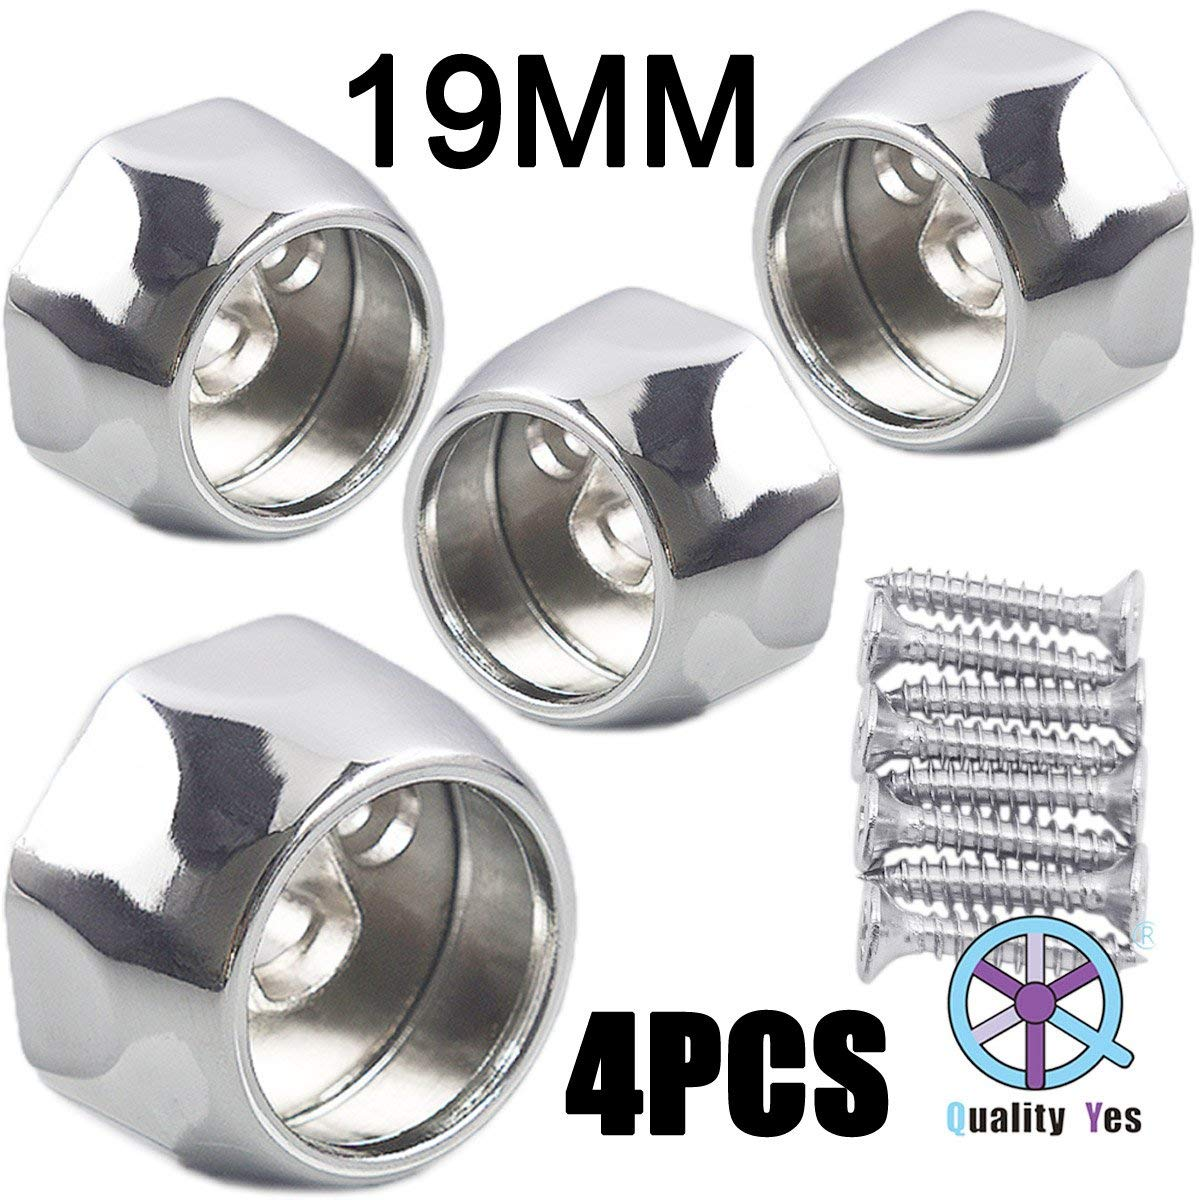 QY 4PCS All Zinc Alloy Wardrobe Pipe Tube Hanging Rod End Bracket Support Wall Mounted Flange Rail Holder Bracket for 22mm Diameter Tube Quality Yes